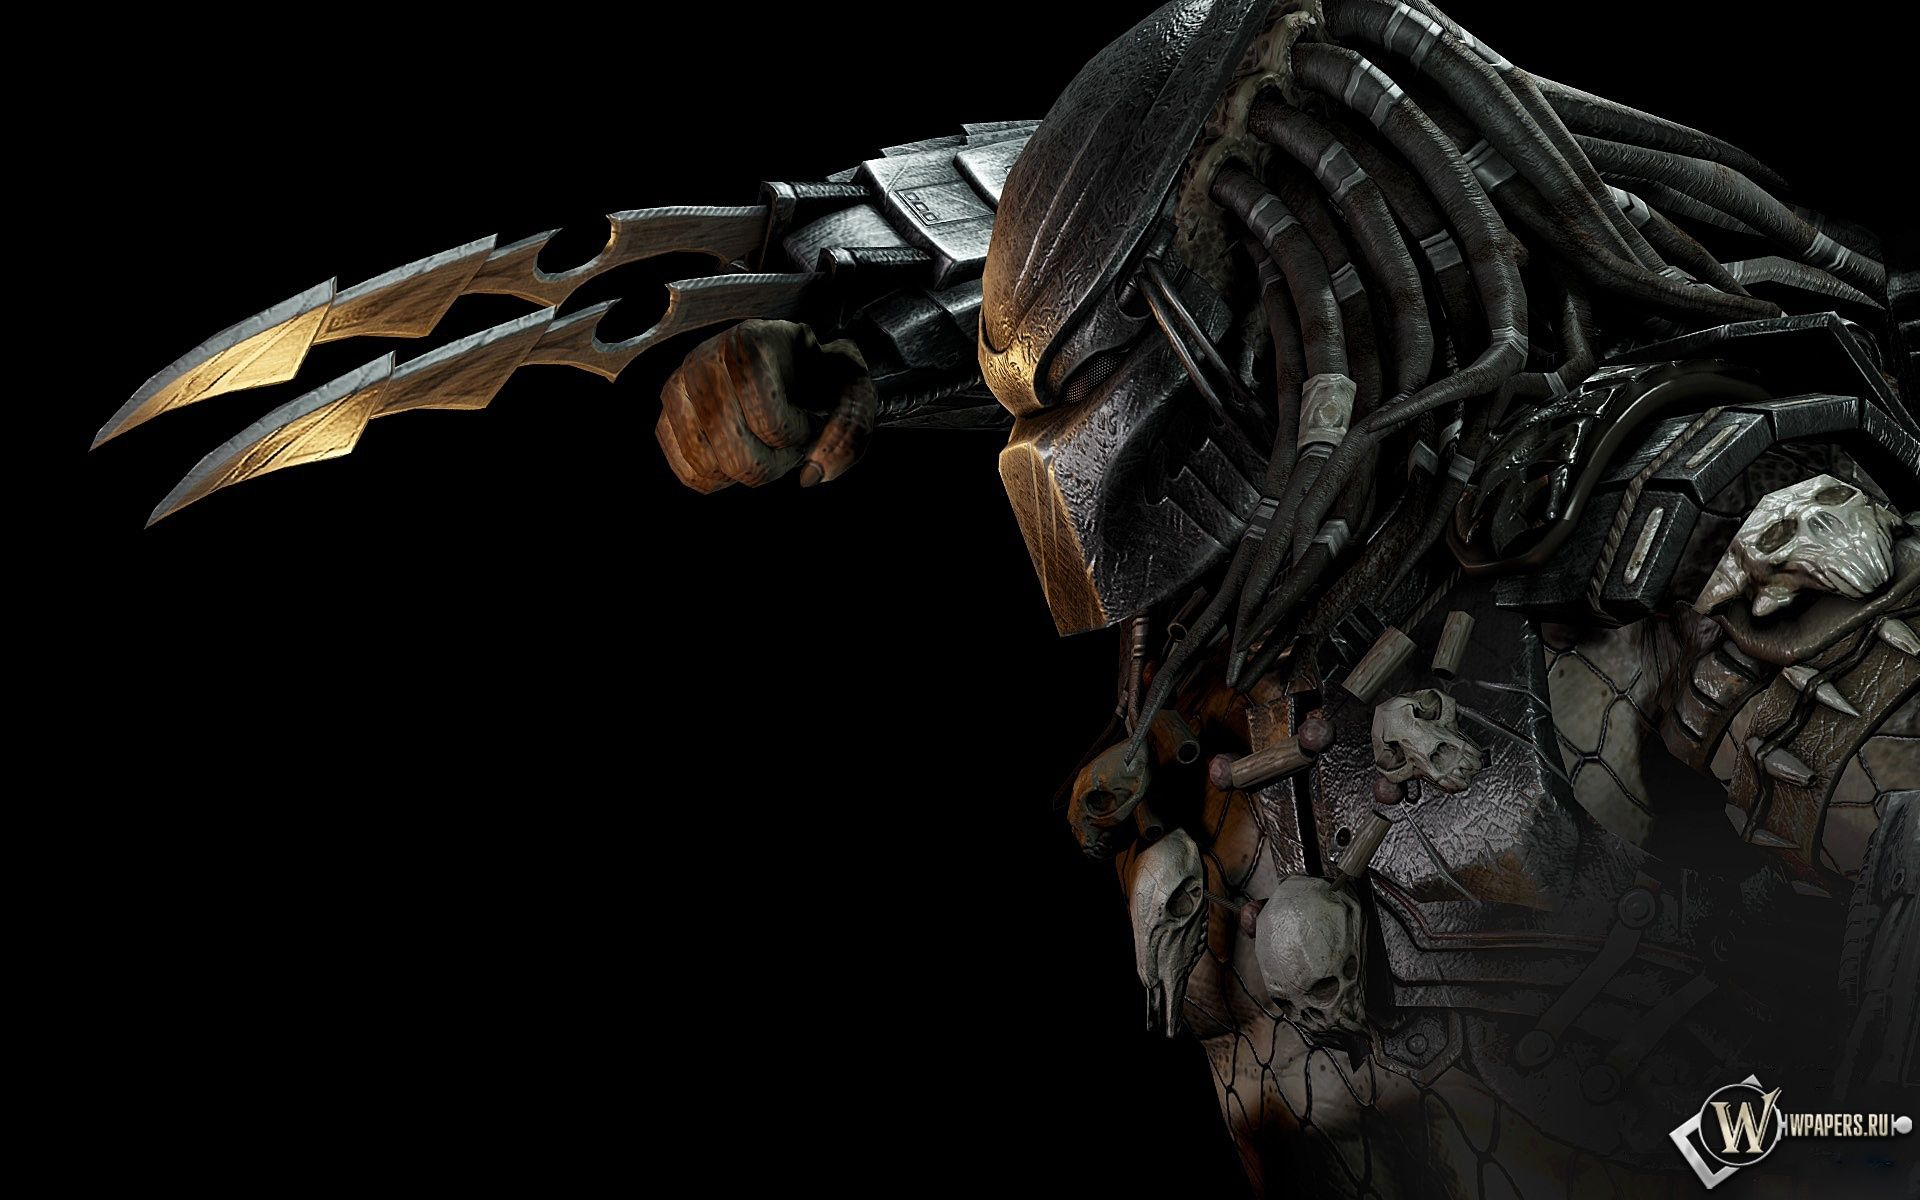 Alien Predator Wallpapers Full HD wallpaper search